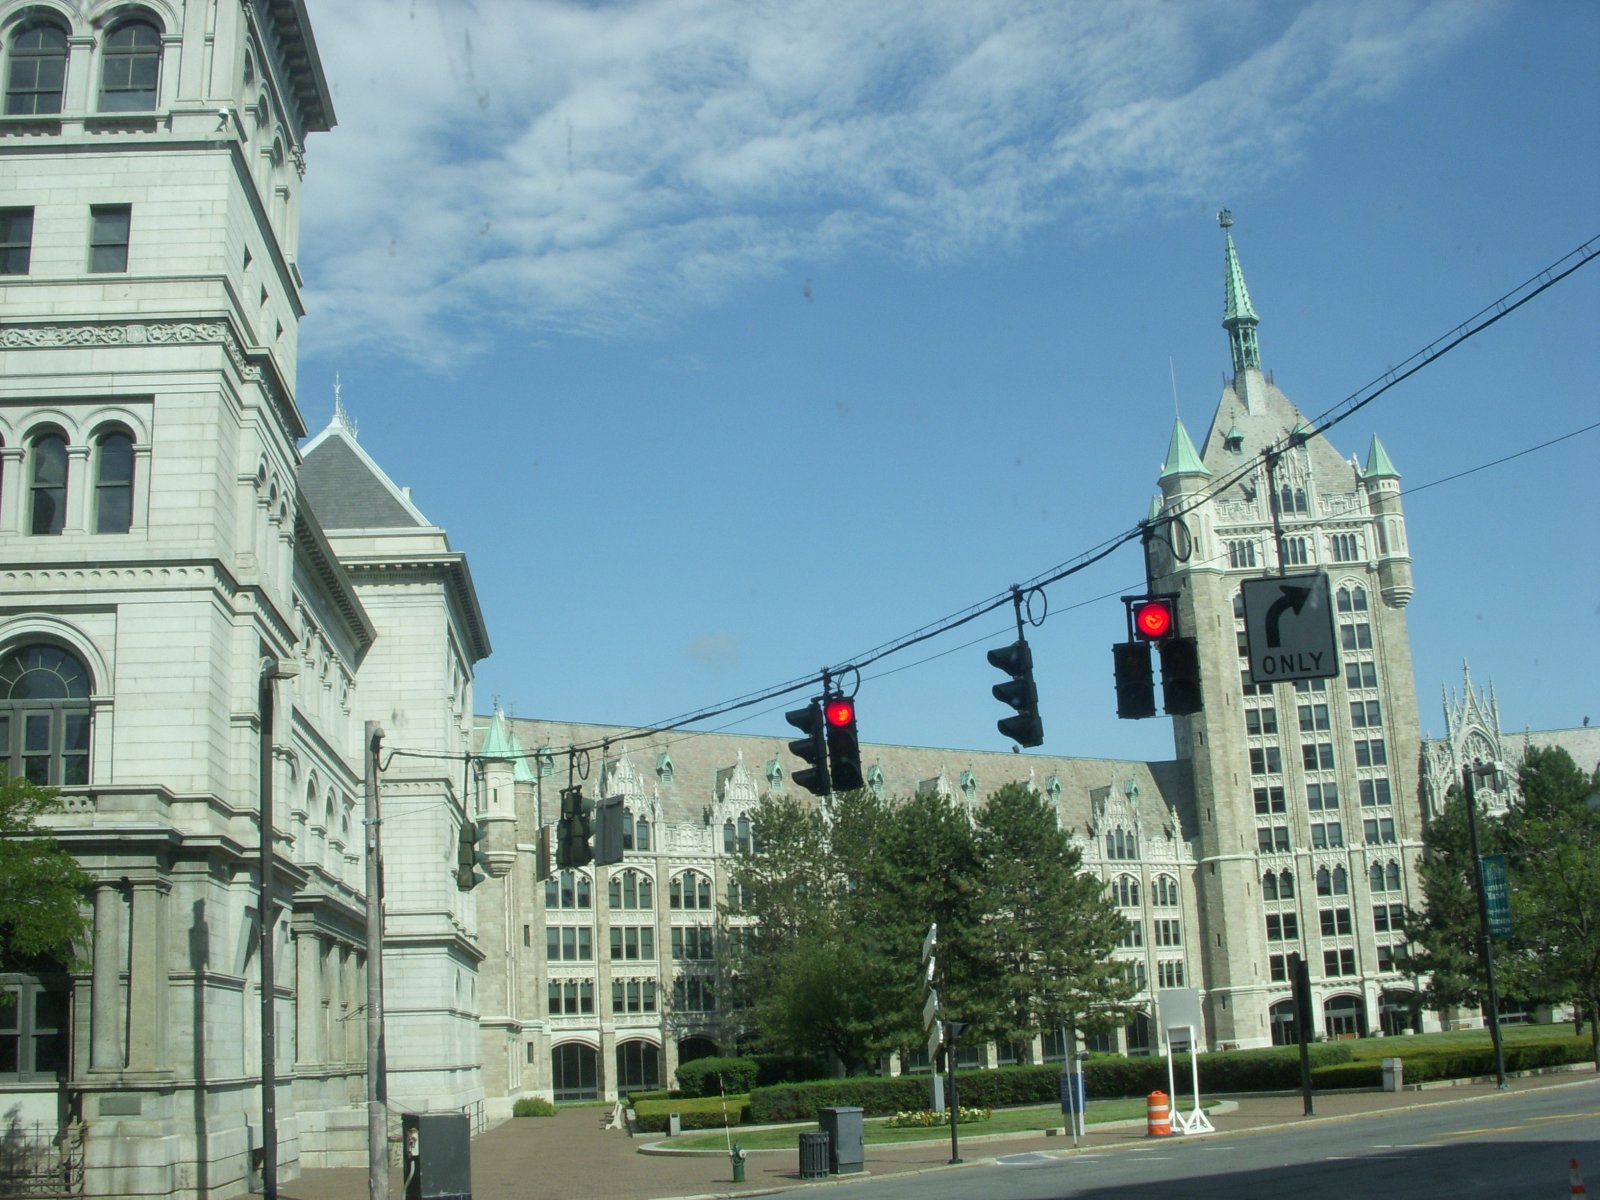 Click image for larger version  Name:Mass. Conn, Penn, Aug 2011 023.jpg Views:77 Size:327.8 KB ID:137559